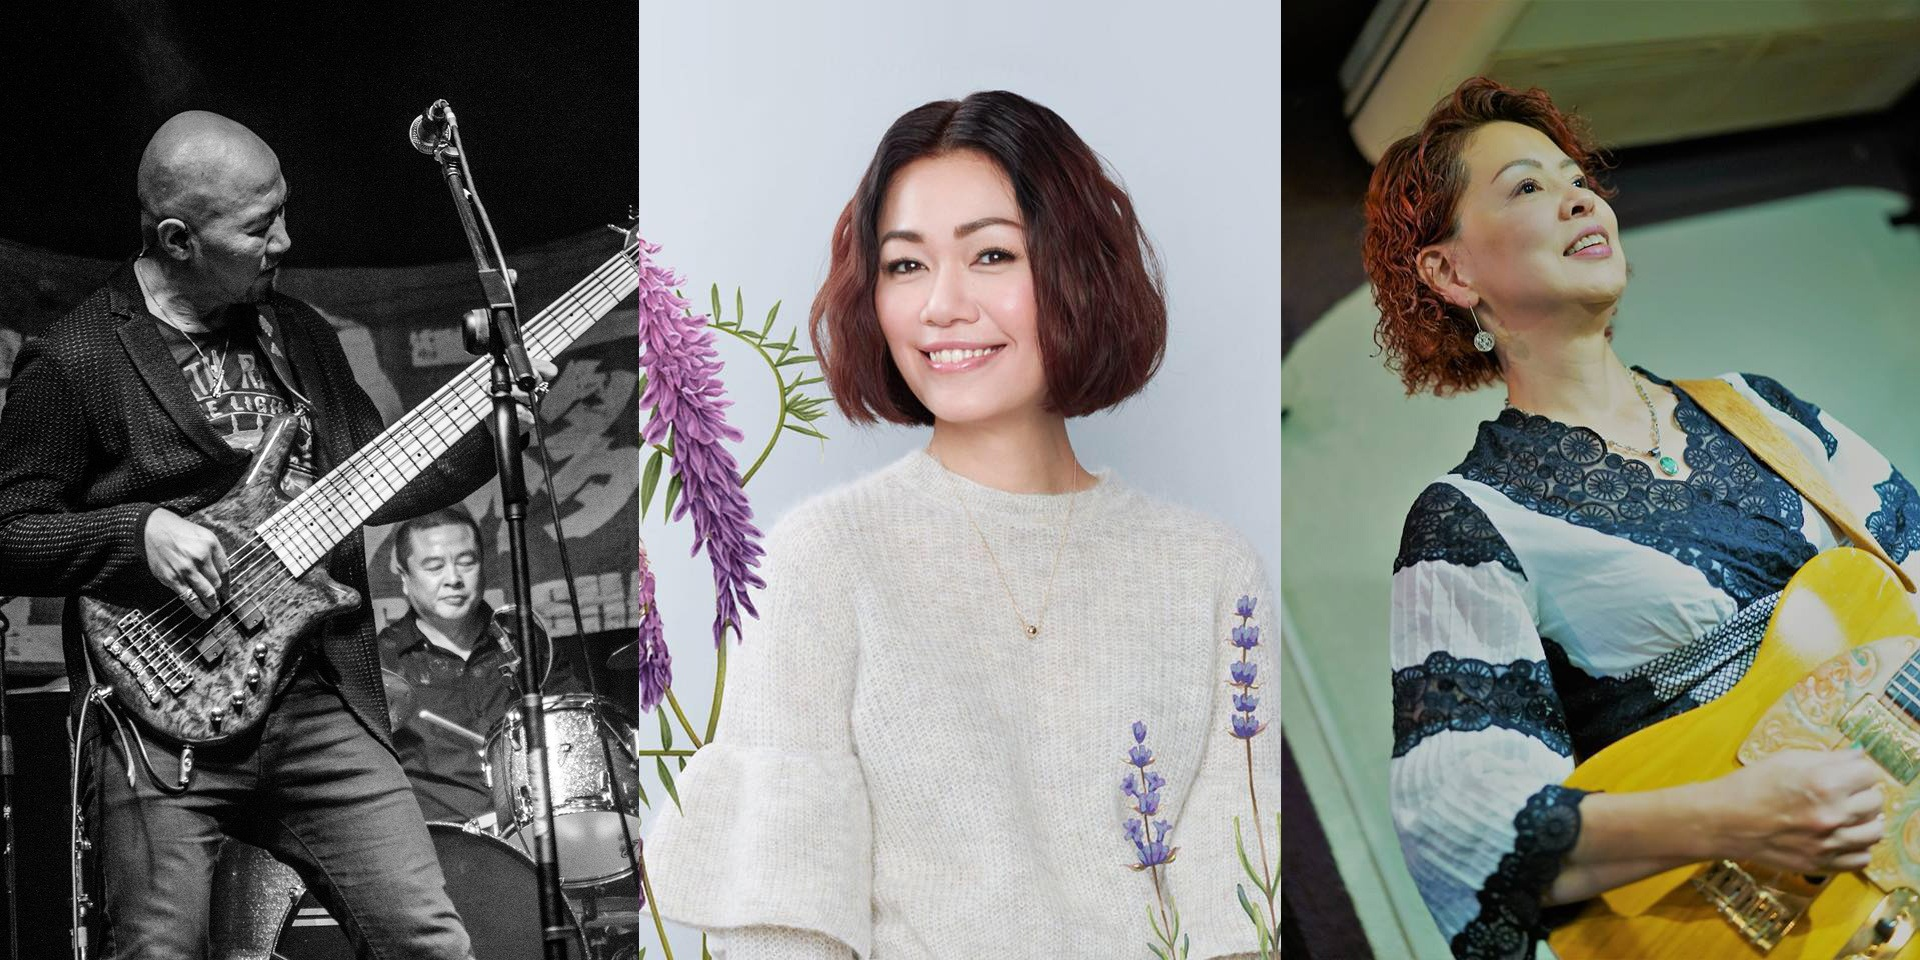 Timbre Music branches into Shanghai for Boogaloo music festival featuring Singaporean acts Joanna Dong, Raw Earth, and more